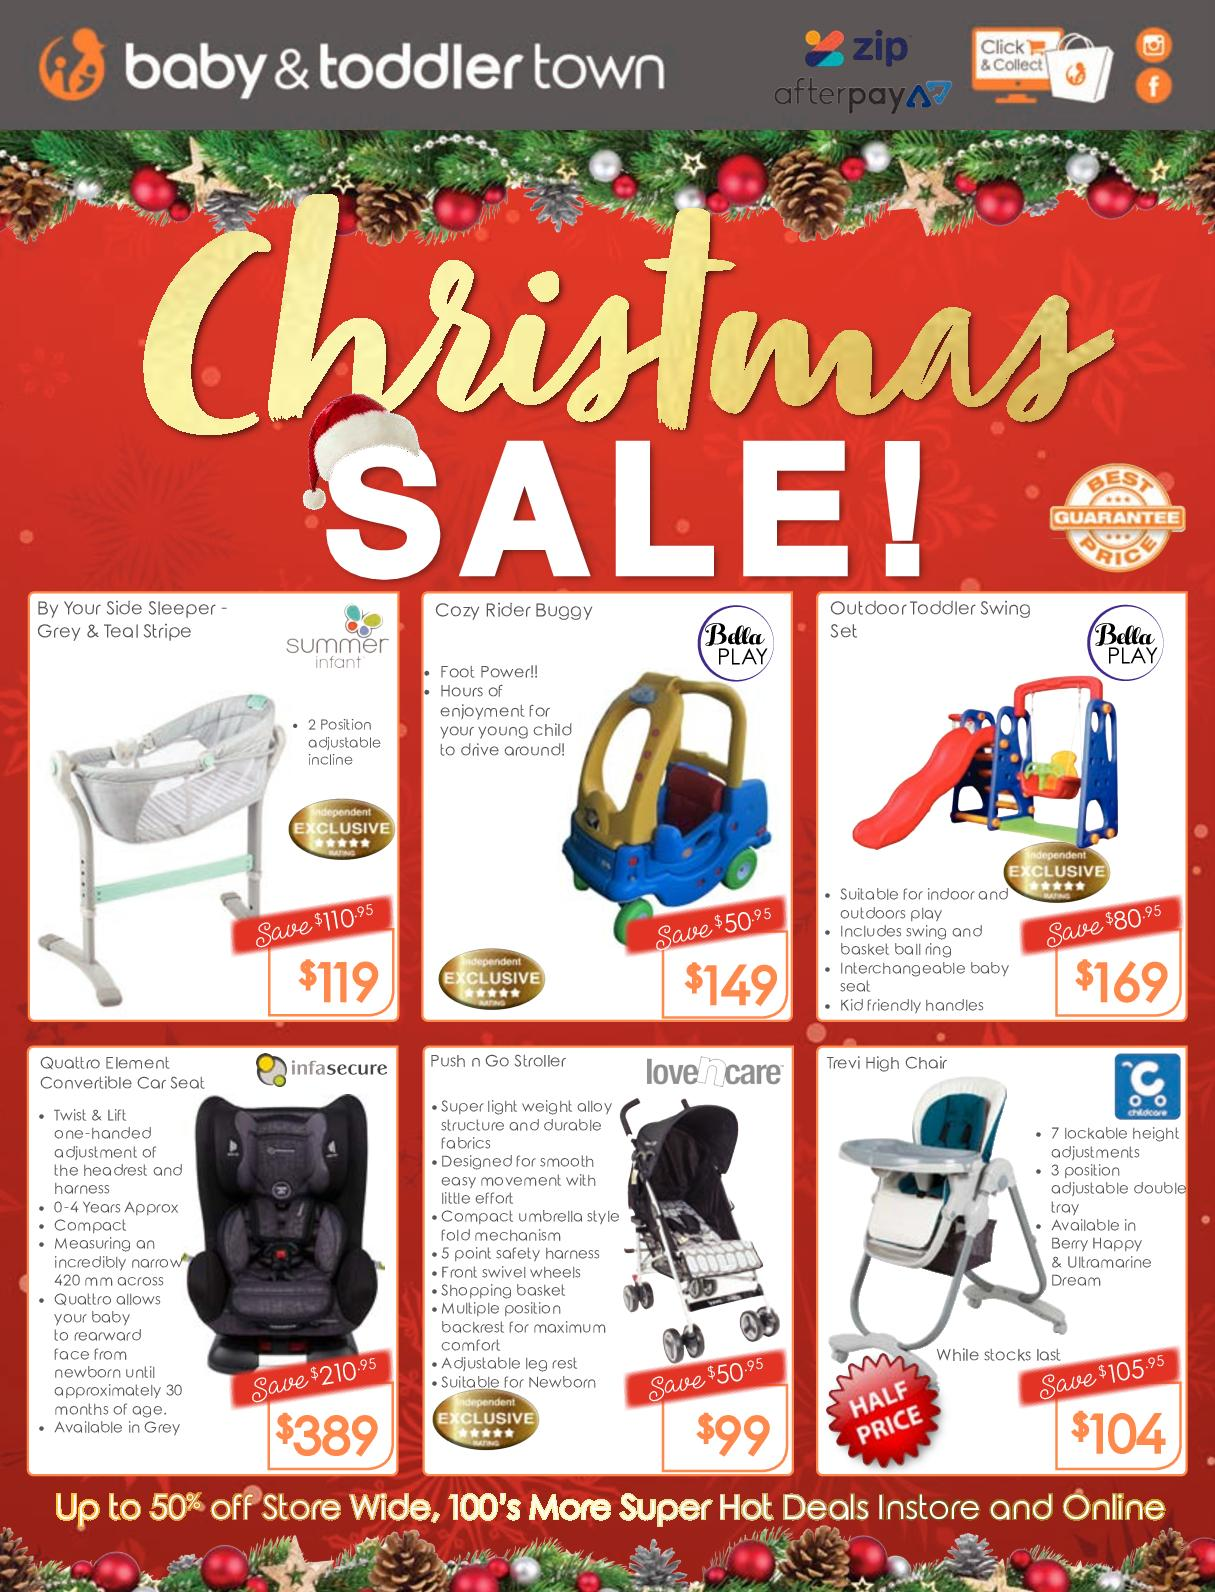 Britax Duo Twin Dolls Buggy Hot Pink Calaméo Baby Toddler Town Christmas Sale Catalogue